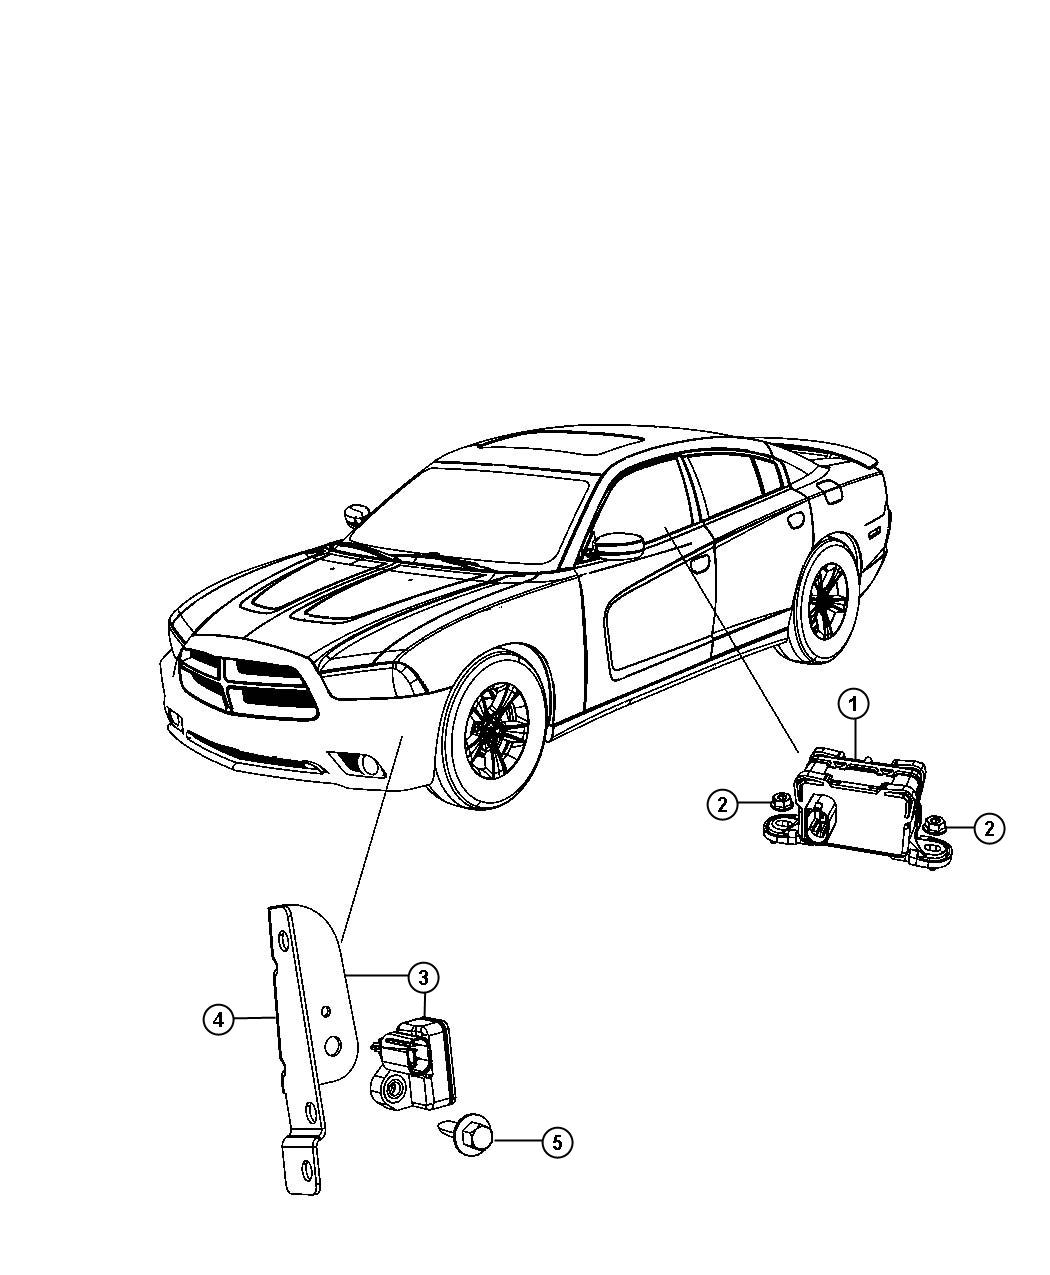 2006 Infiniti Qx56 Wiring Diagram likewise 5msqc Nissan Datsun Pathfinder Se 2007 Nissan Pathfinder Se Having also Toyota Ta a 2 7 2005 Specs And Images also Solenoid Wiring Diagram In Addition On Me additionally 4xxds 1999 Ford Explorer Sport No Current Blower Switch Motor Relay Port Wiring Har. on nissan armada 4x4